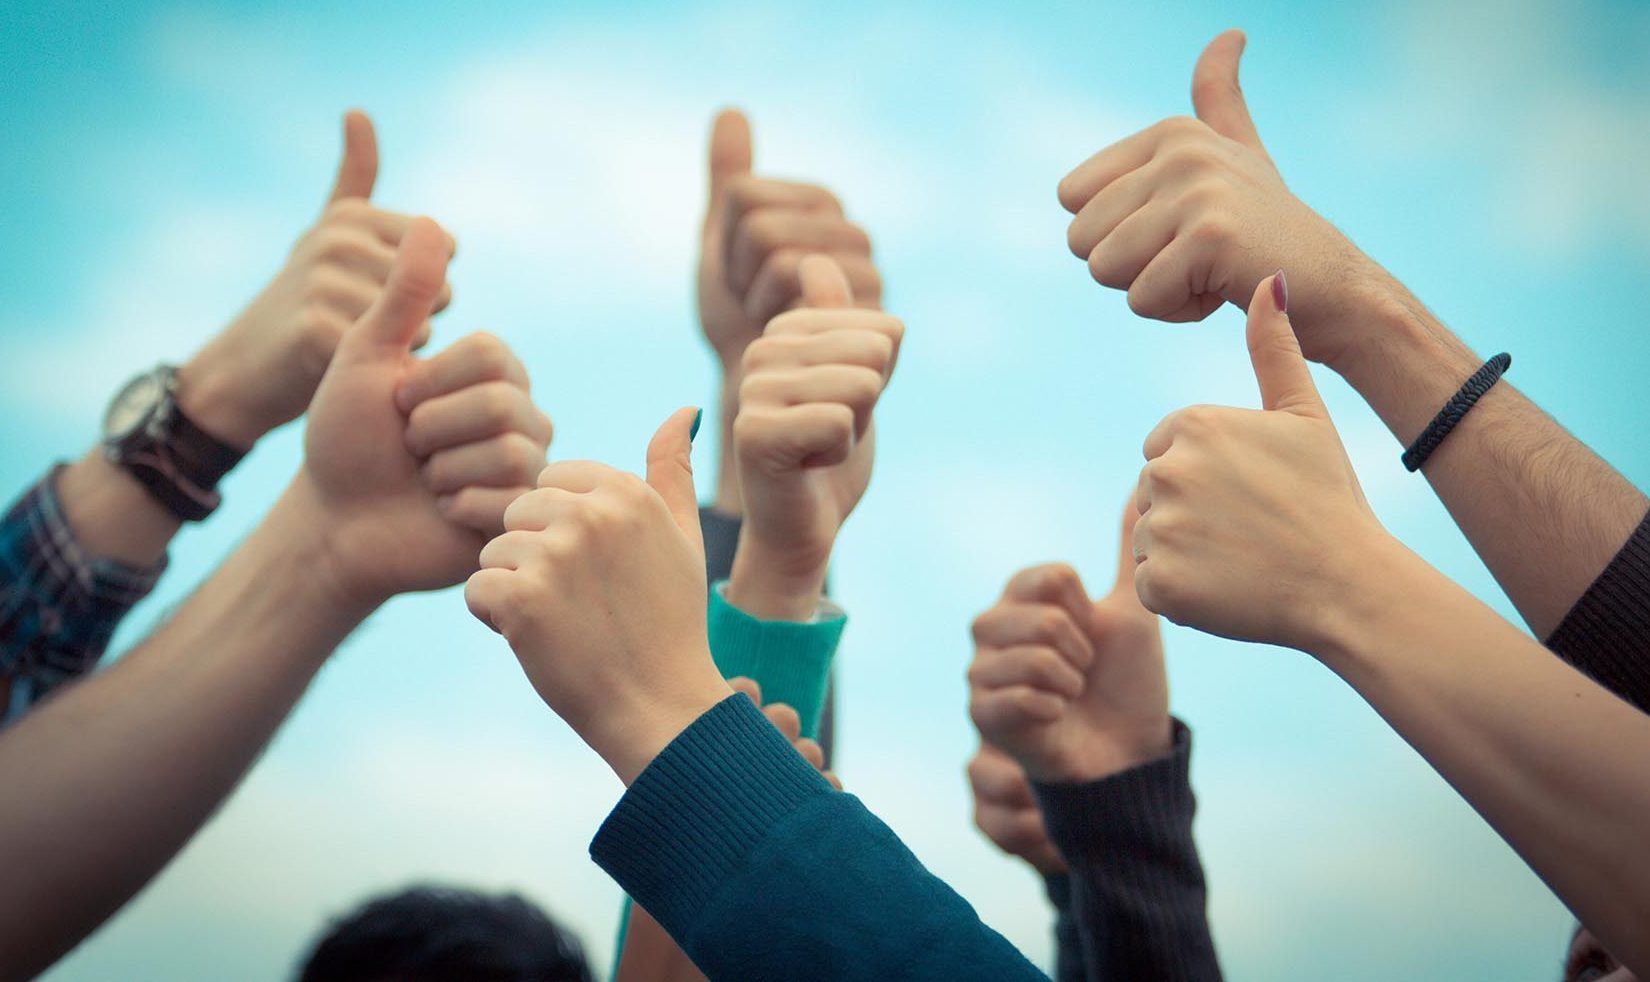 thumbs up migration news